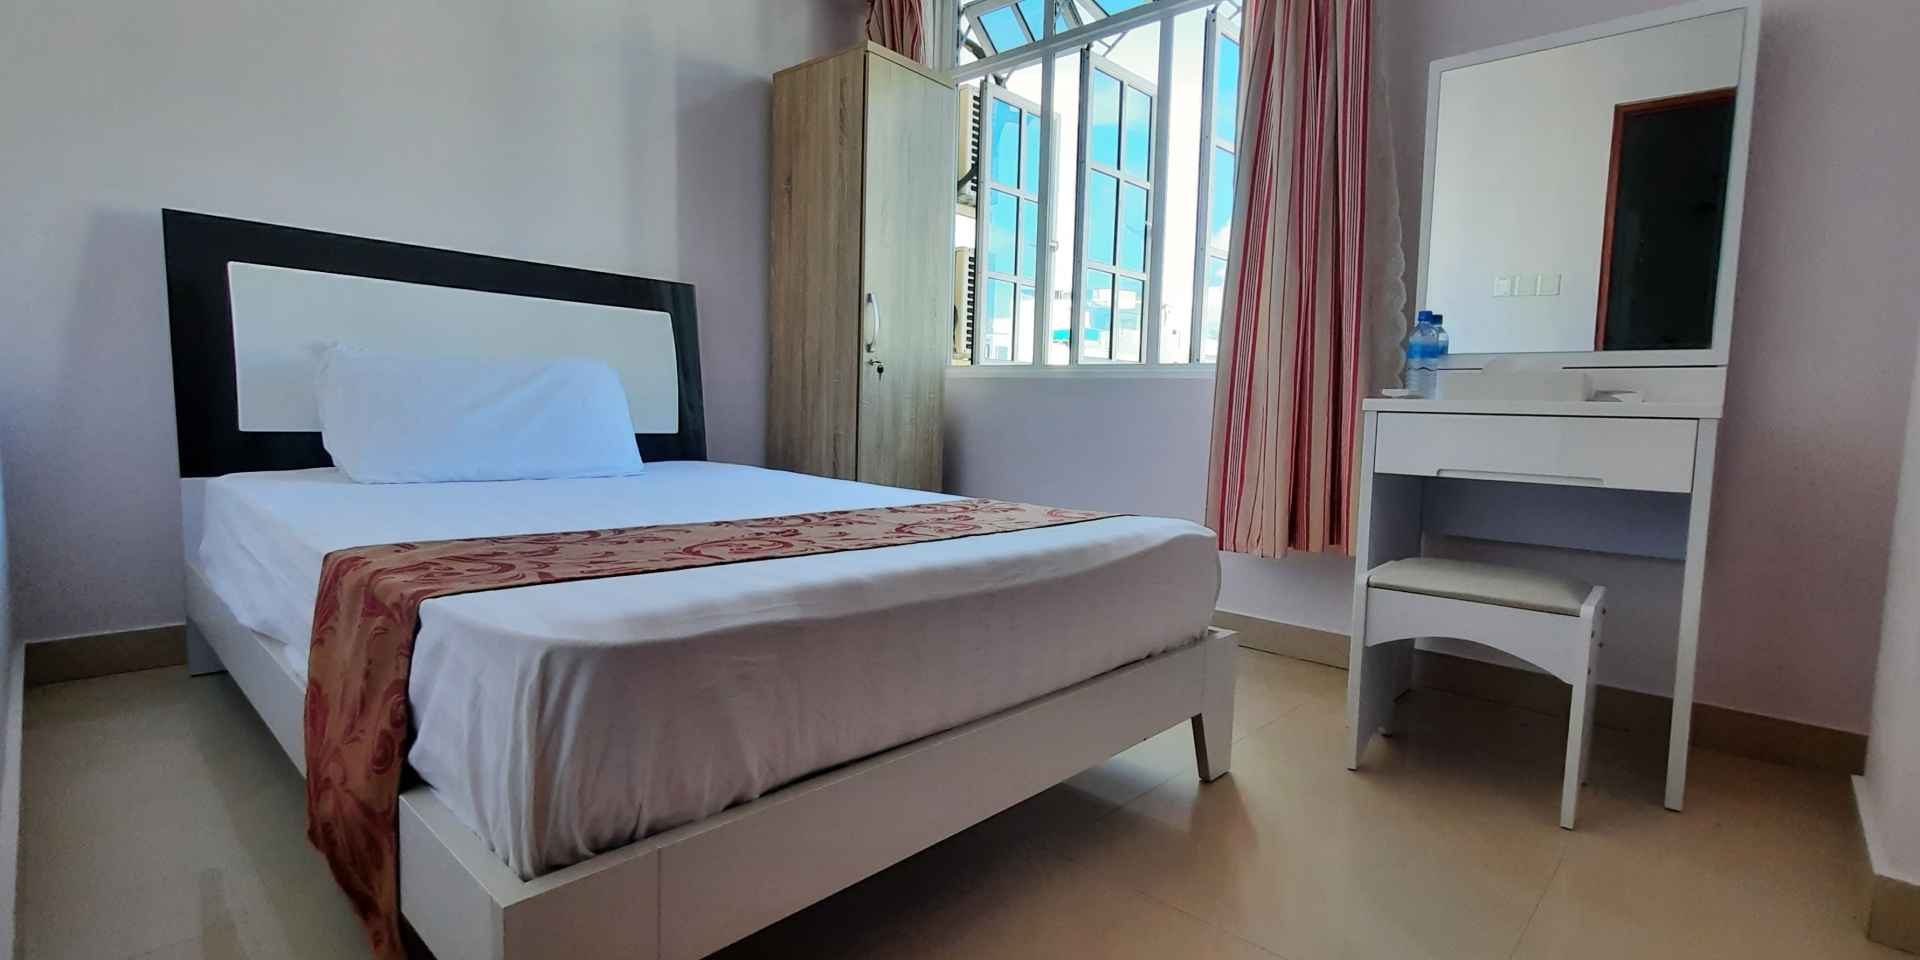 Hotel Octave Maldives 3 Star City Hotel On Capital Male